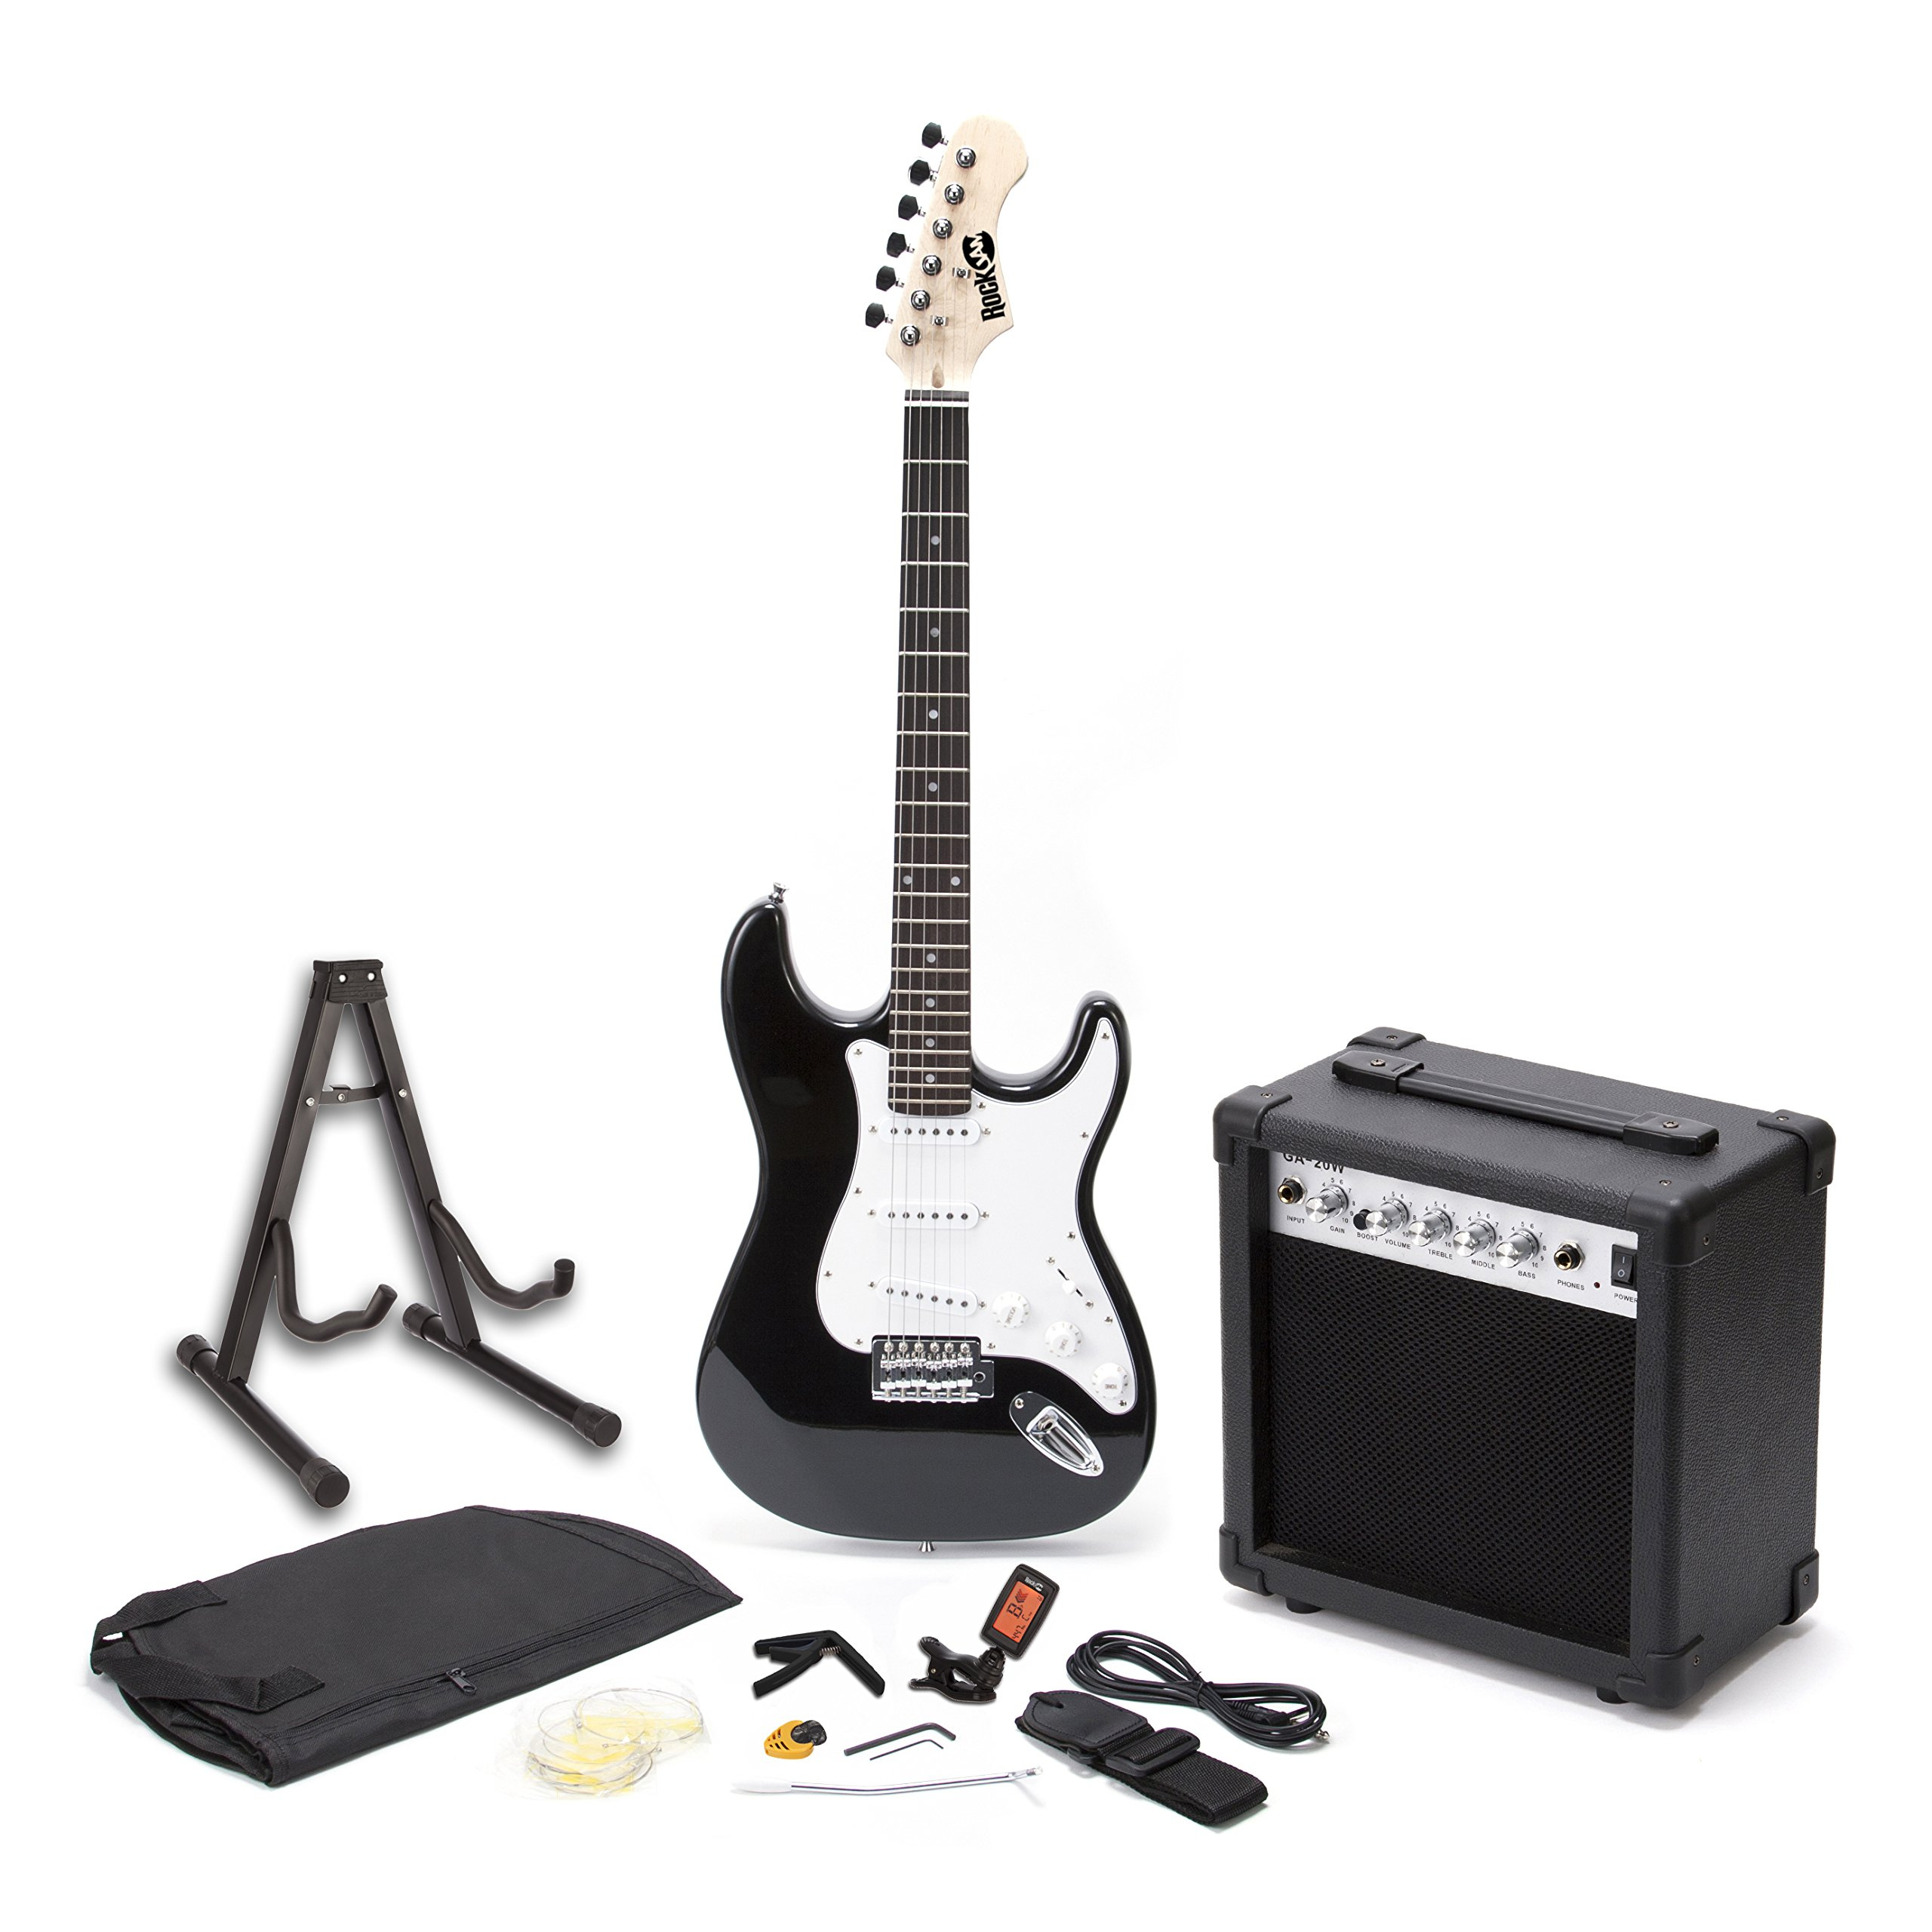 RockJam Full Size Electric Guitar SuperKit with 20 Watt Amp, Guitar Stand, Case, Tuner, and Accessories